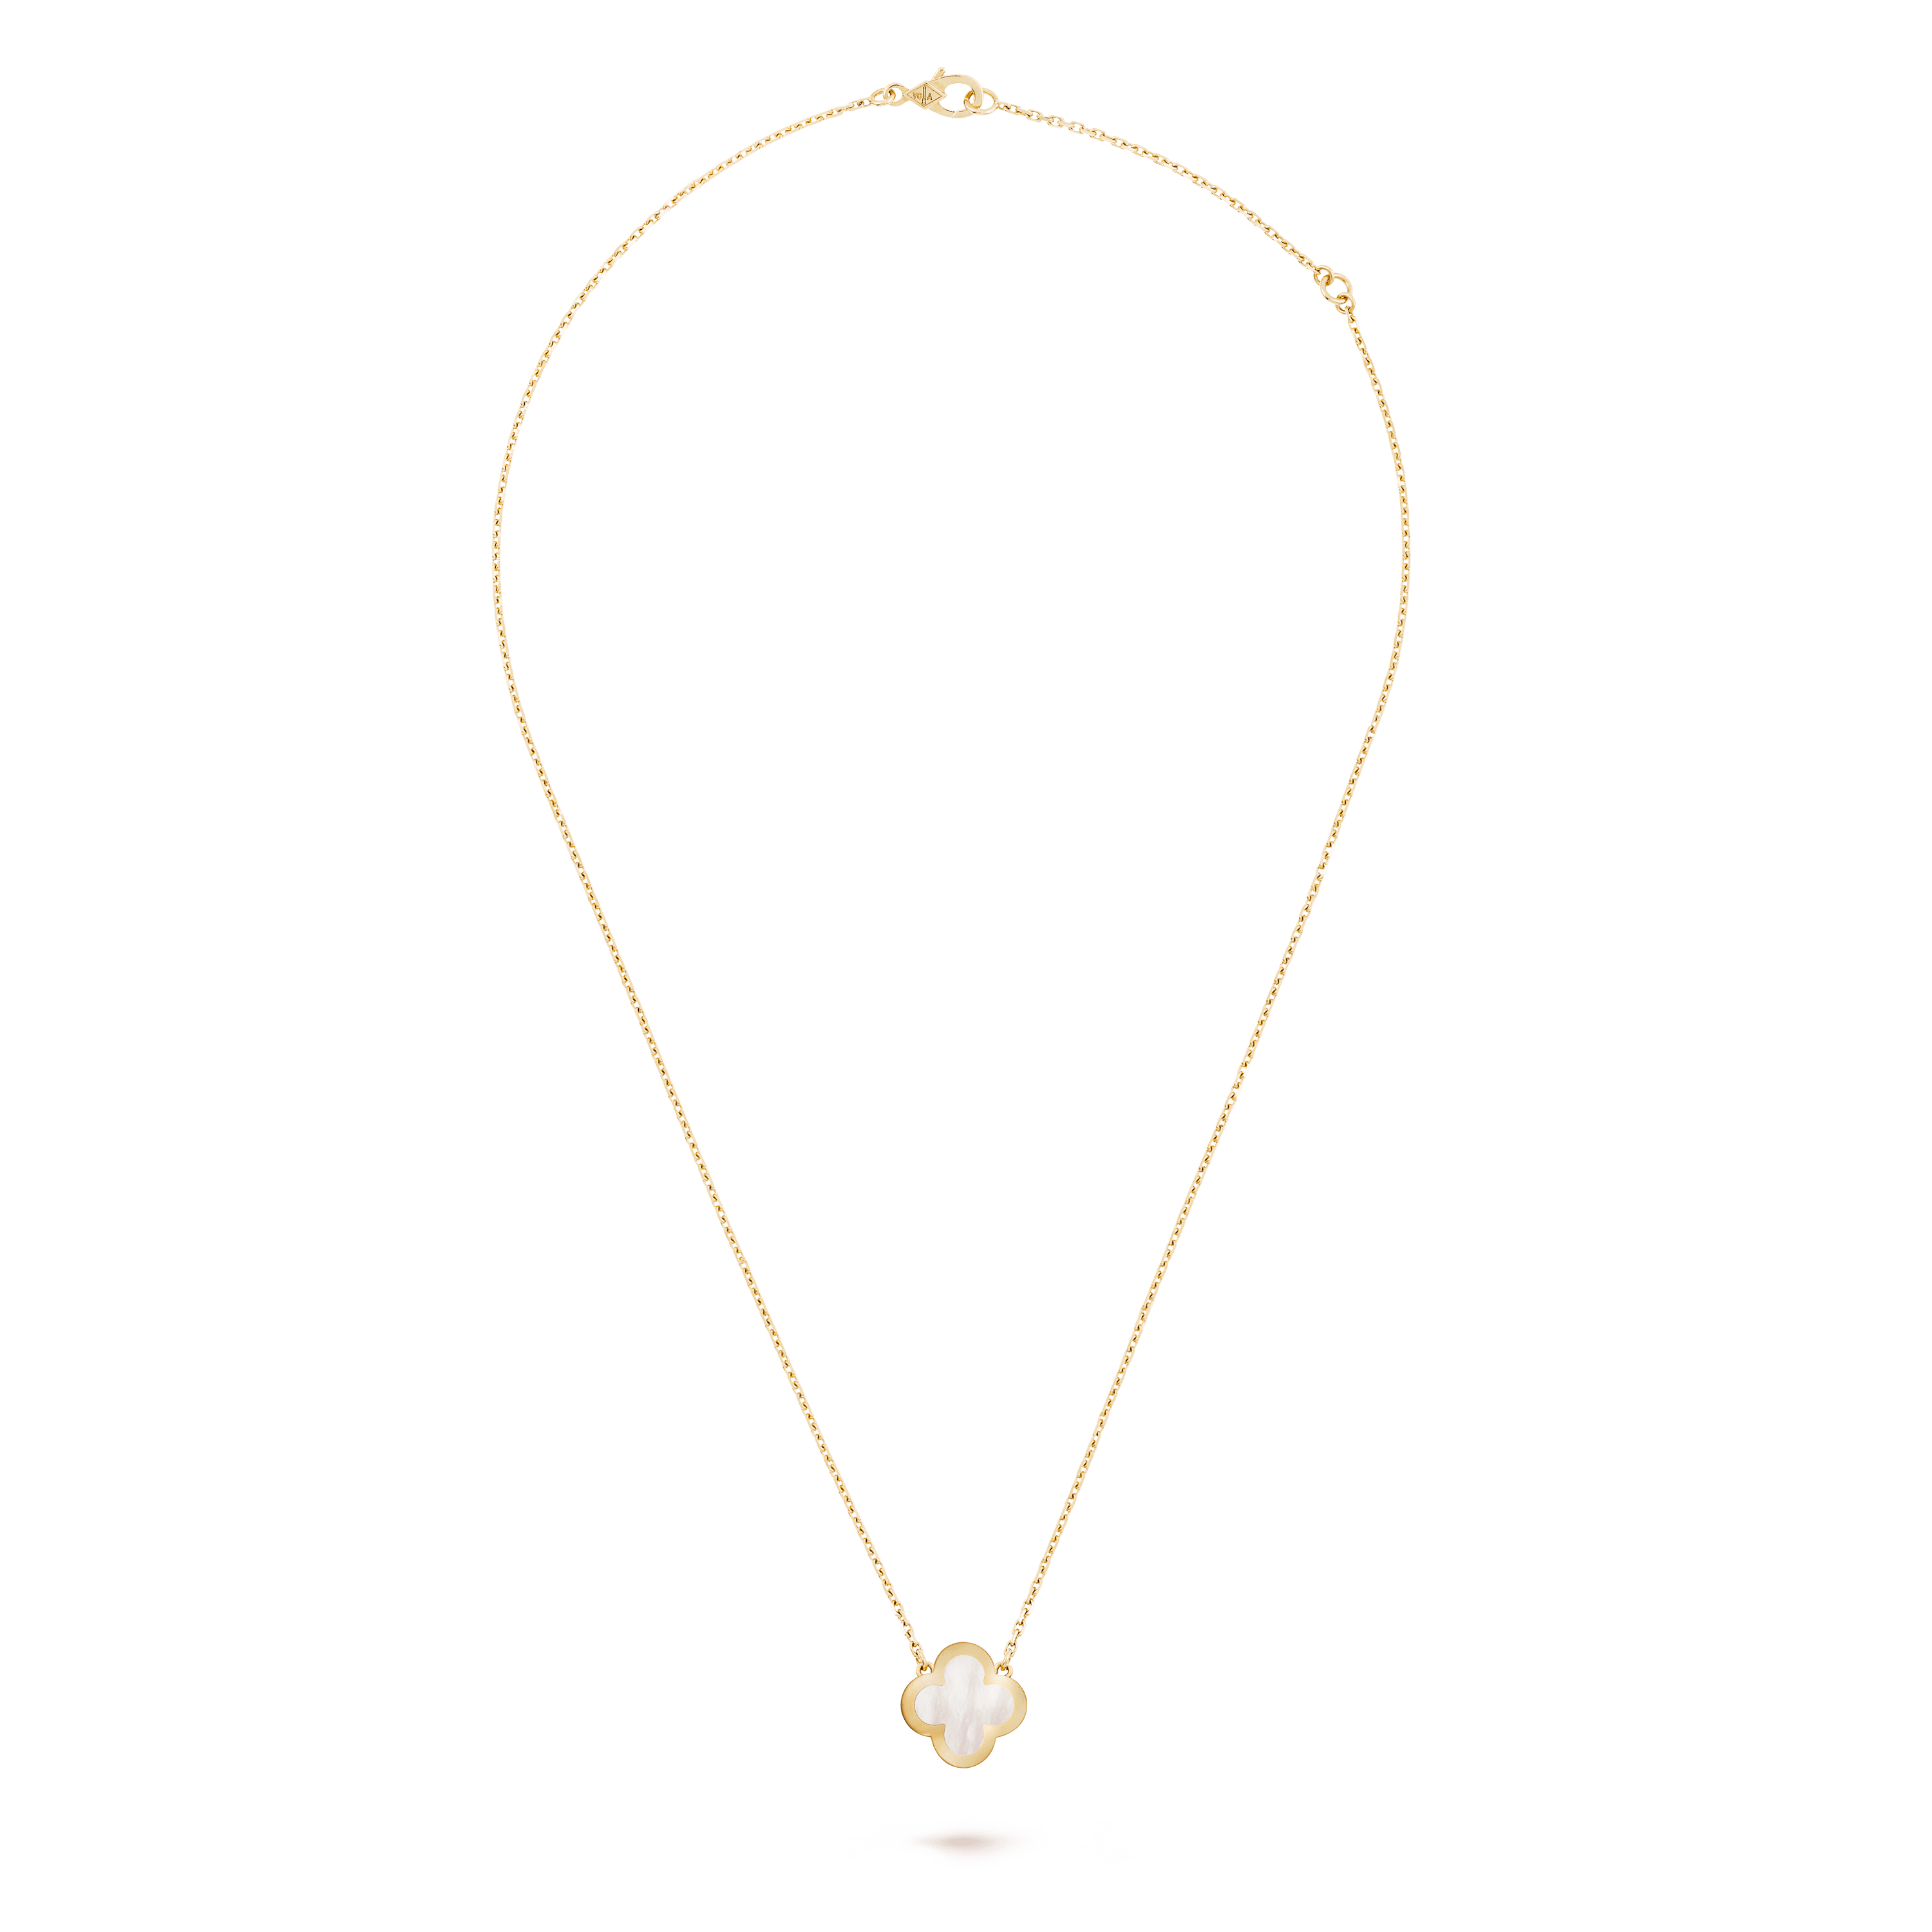 Pure Alhambra pendant, - Front View - VCARA39700 - Van Cleef & Arpels